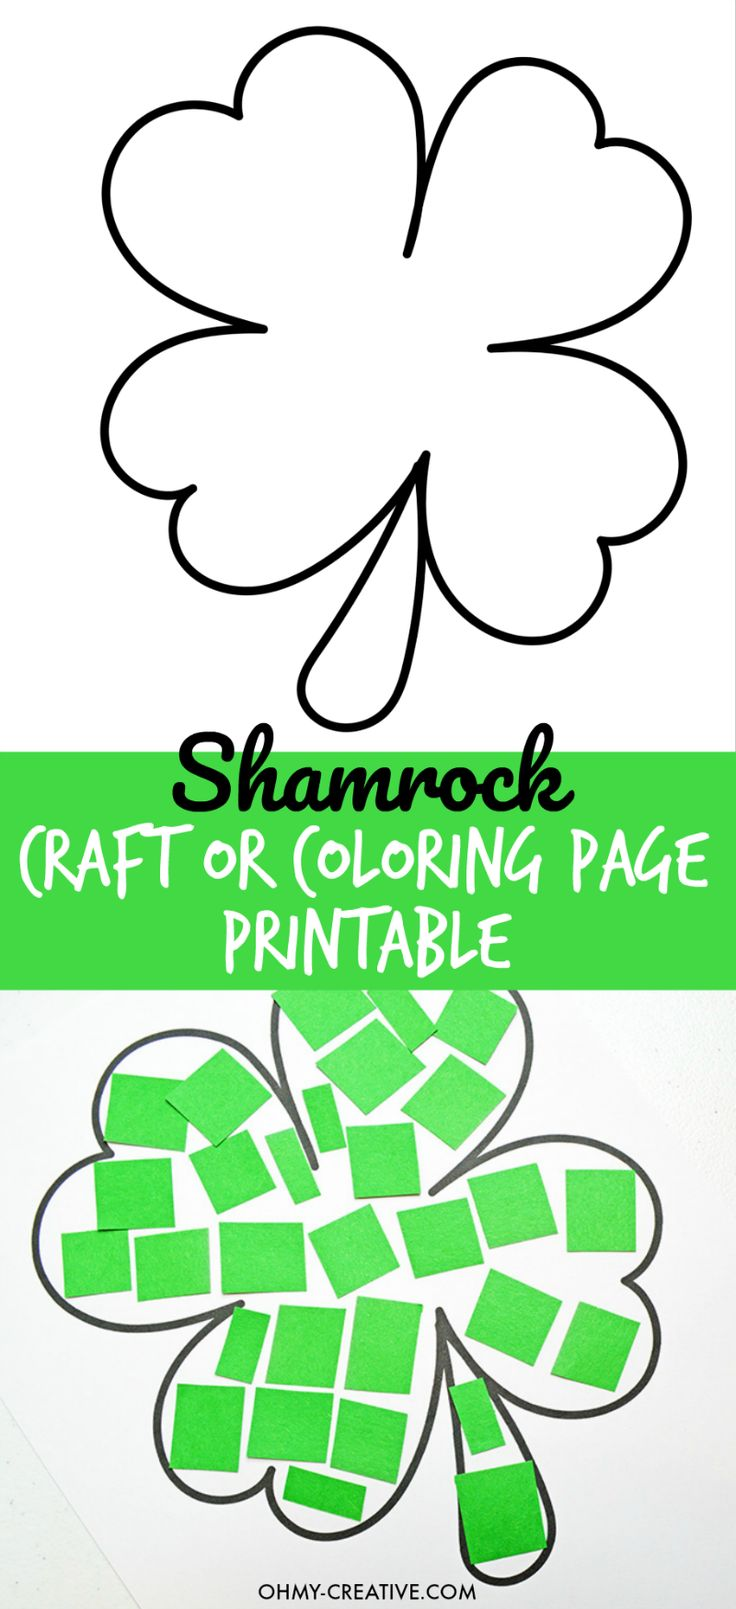 782 best Free printables images on Pinterest | Free printable, Free ...